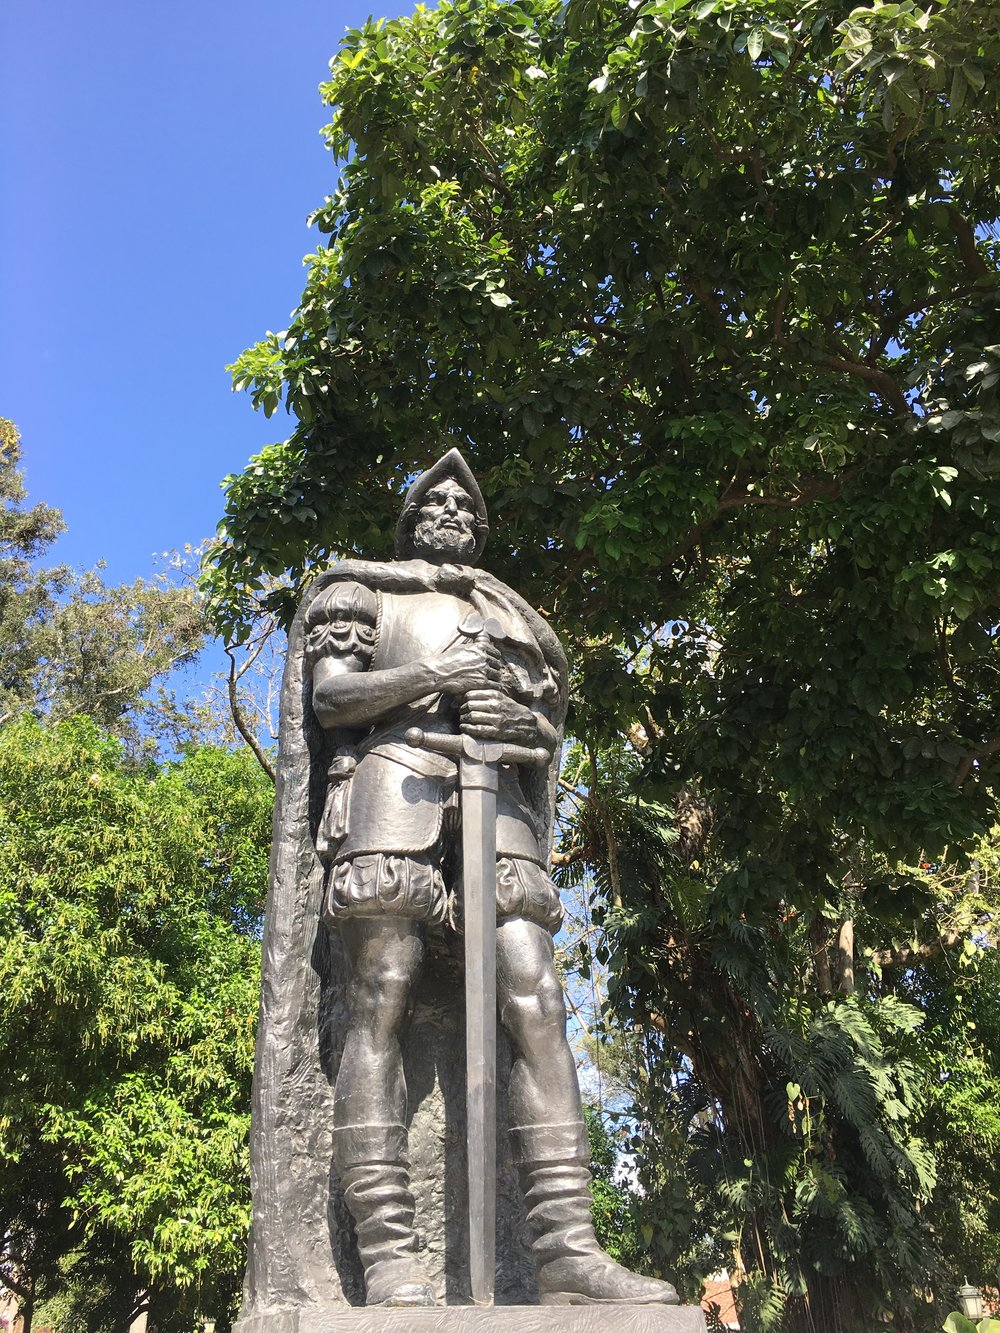 A statue of Juan Vazquez de Coronado overlooks a fountain in Parque Espana. The Spanish conquistador played a major role in the colonization of Costa Rica and was the province's first appointed Royal Governor.